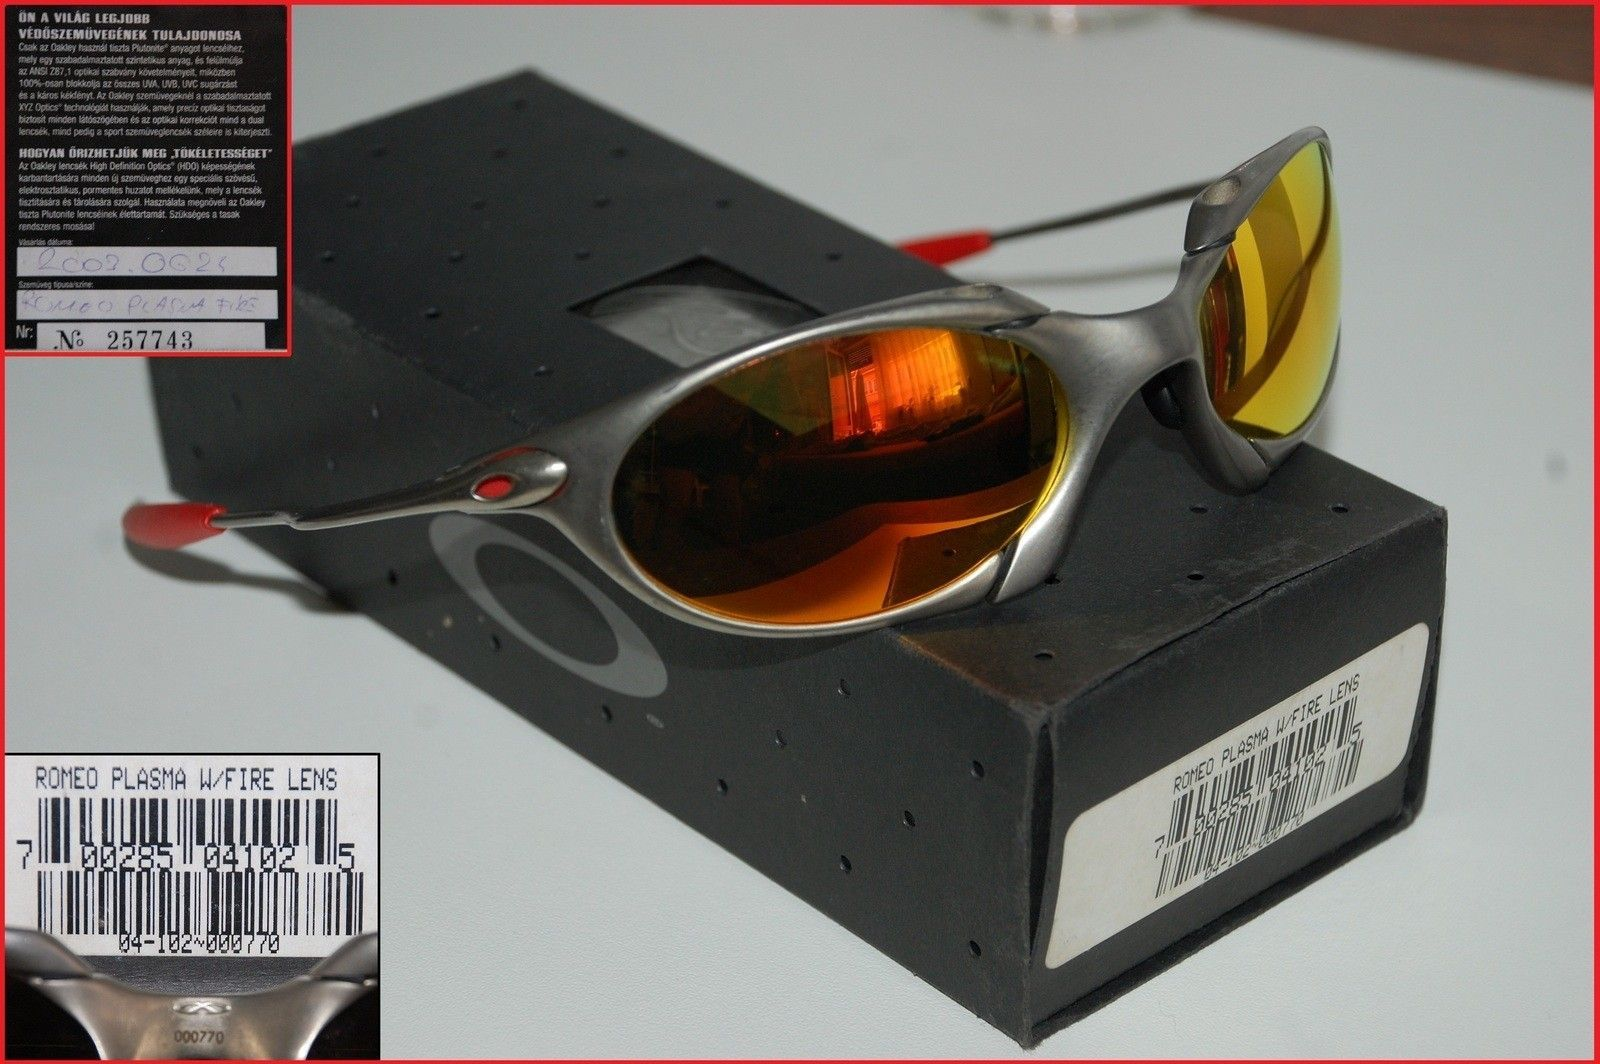 Complete matching Plasma-Fire R1 (000770) PICTURES  ADDED!!! - R1000770.jpg